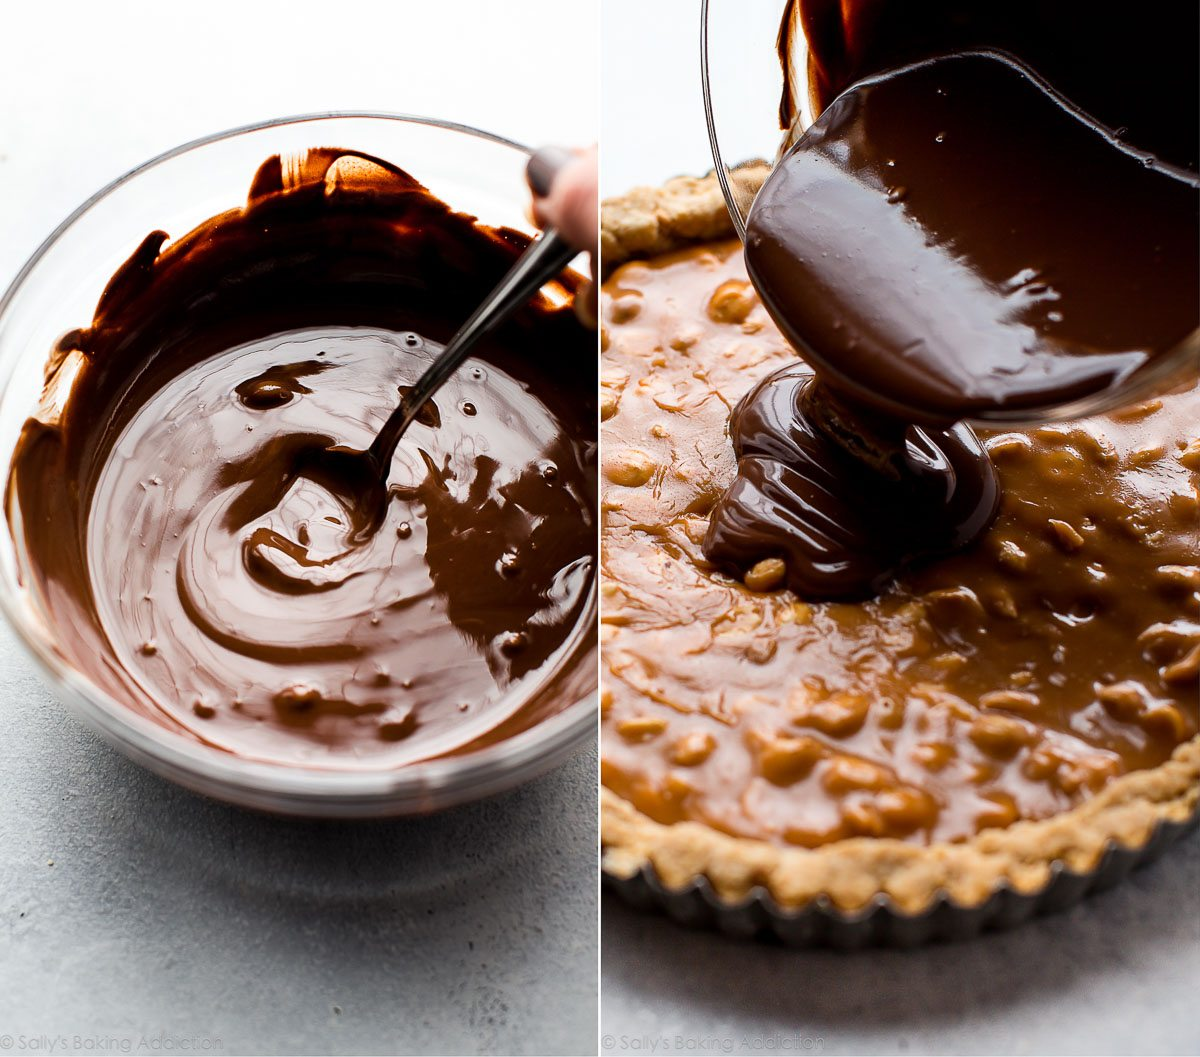 How to make Snickers caramel tart on sallysbakingaddiction.com